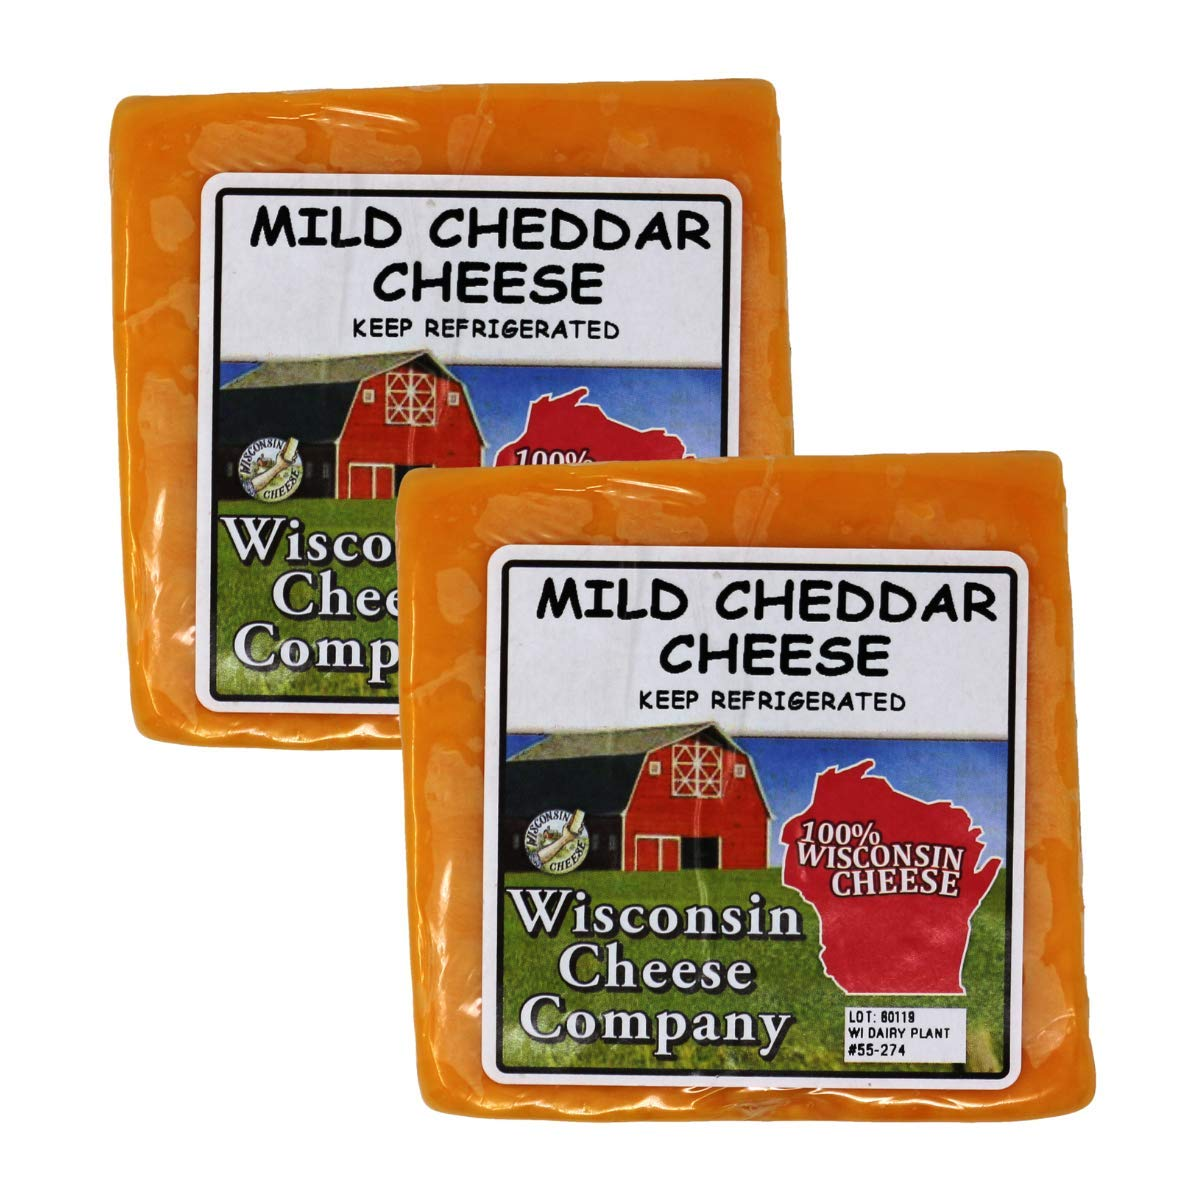 WISCONSIN CHEESE COMPANY - Fresh Healthy Mild Cheddar Cheese Block Snacks. (2 Pack) Approx 2lbs, 100 % Wisconsin Cheddar Cheese Package, Healthy Snack or Gift to Send. Mild Cheddar.